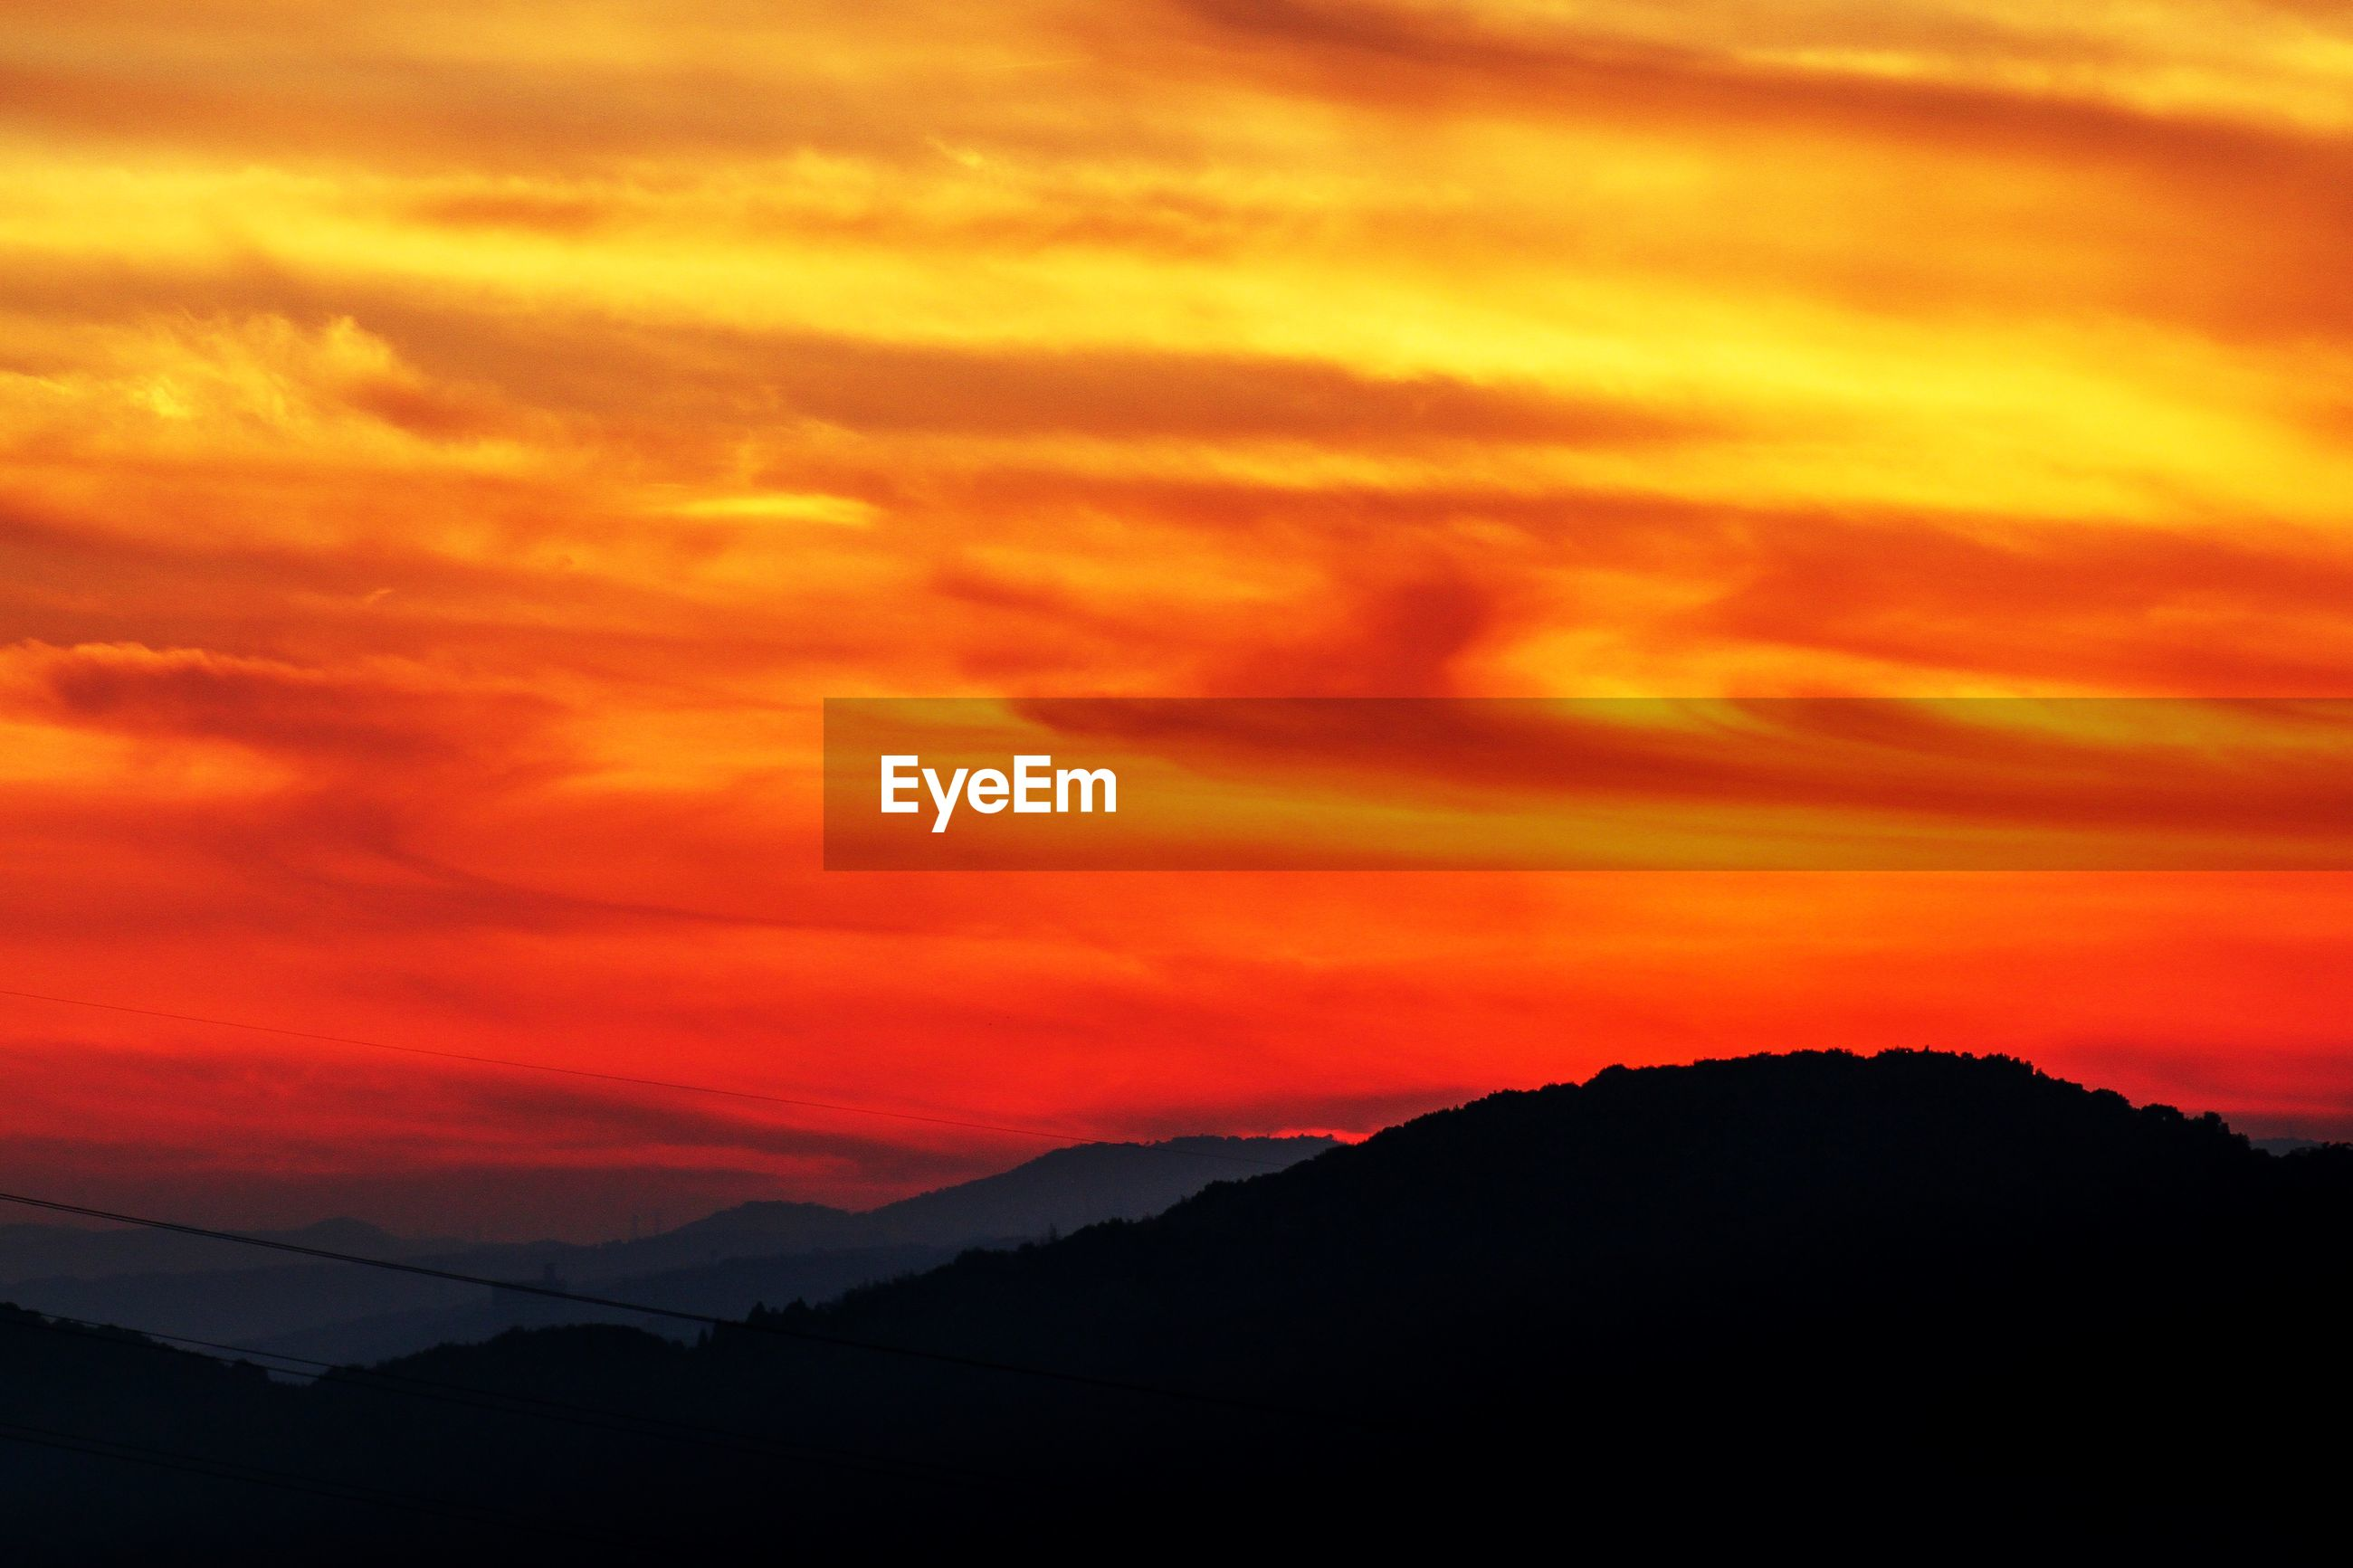 Scenic view of silhouette mountains against orange cloudy sky